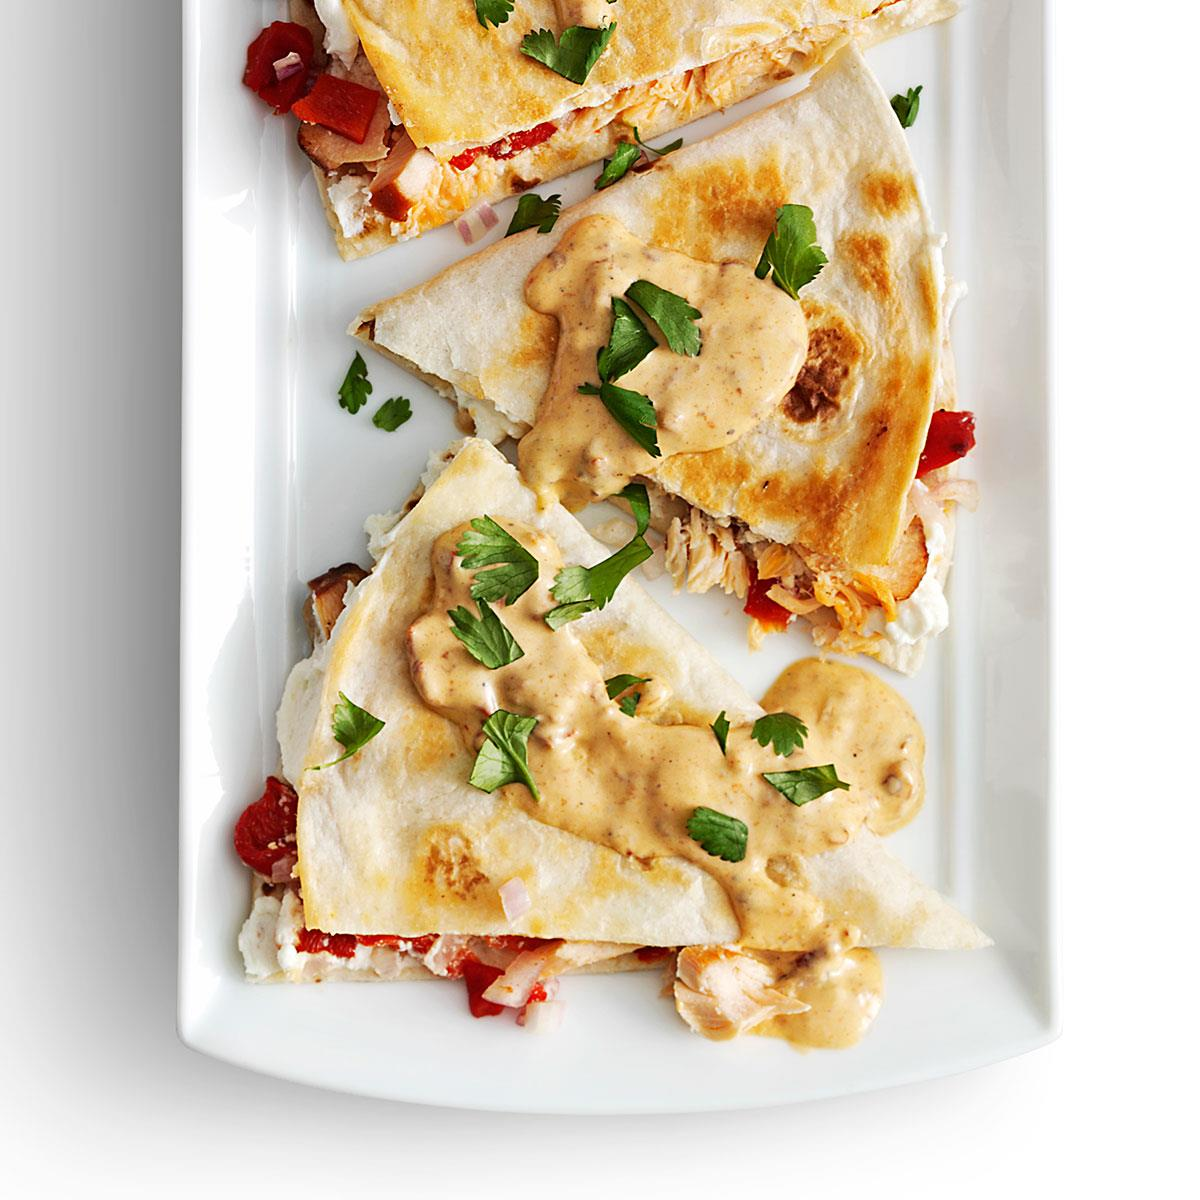 Smoked Salmon Quesadillas with Creamy Chipotle Sauce ...